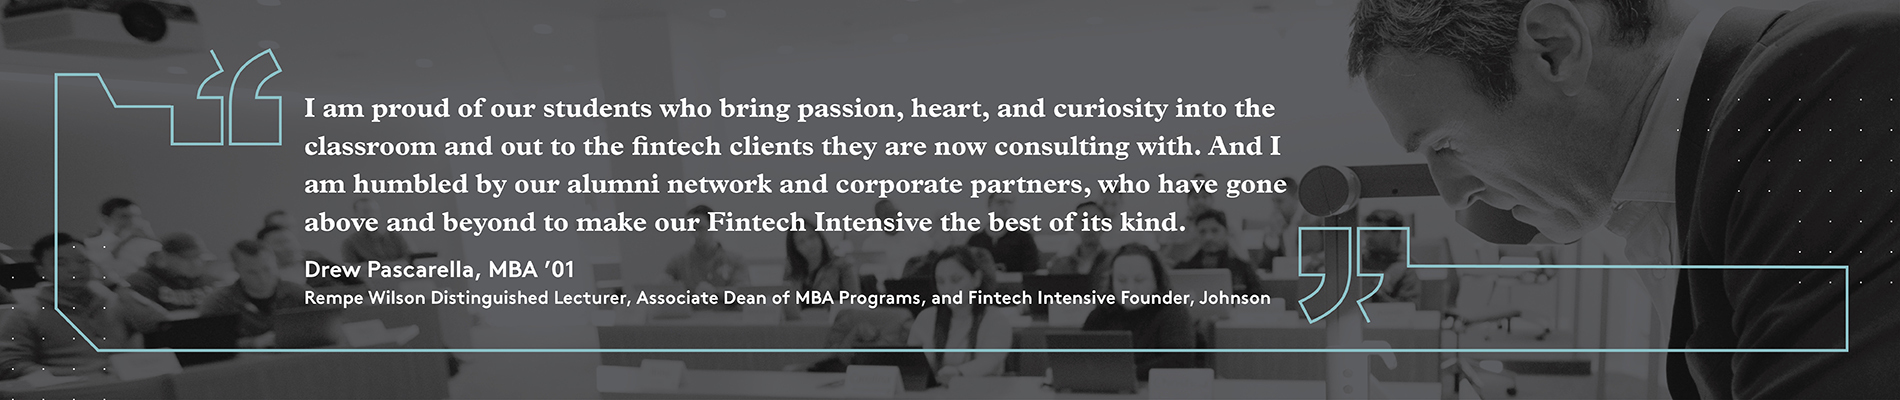 "Quote overlaid a classroom image: ""I am proud of our students who bring passion, heart, and curiosity into the classroom and out to the fintech clients they are now consulting with. And I am humbled by our alumni network and corporate partners, who have gone above and beyond to make our Fintech Intensive the best of its kind."" 12:21 Drew Pascarella, MBA '01 Rempe Wilson Distinguished Lecturer, Associate Dean of MBA Programs, and Fintech Intensive Founder, Johnson"